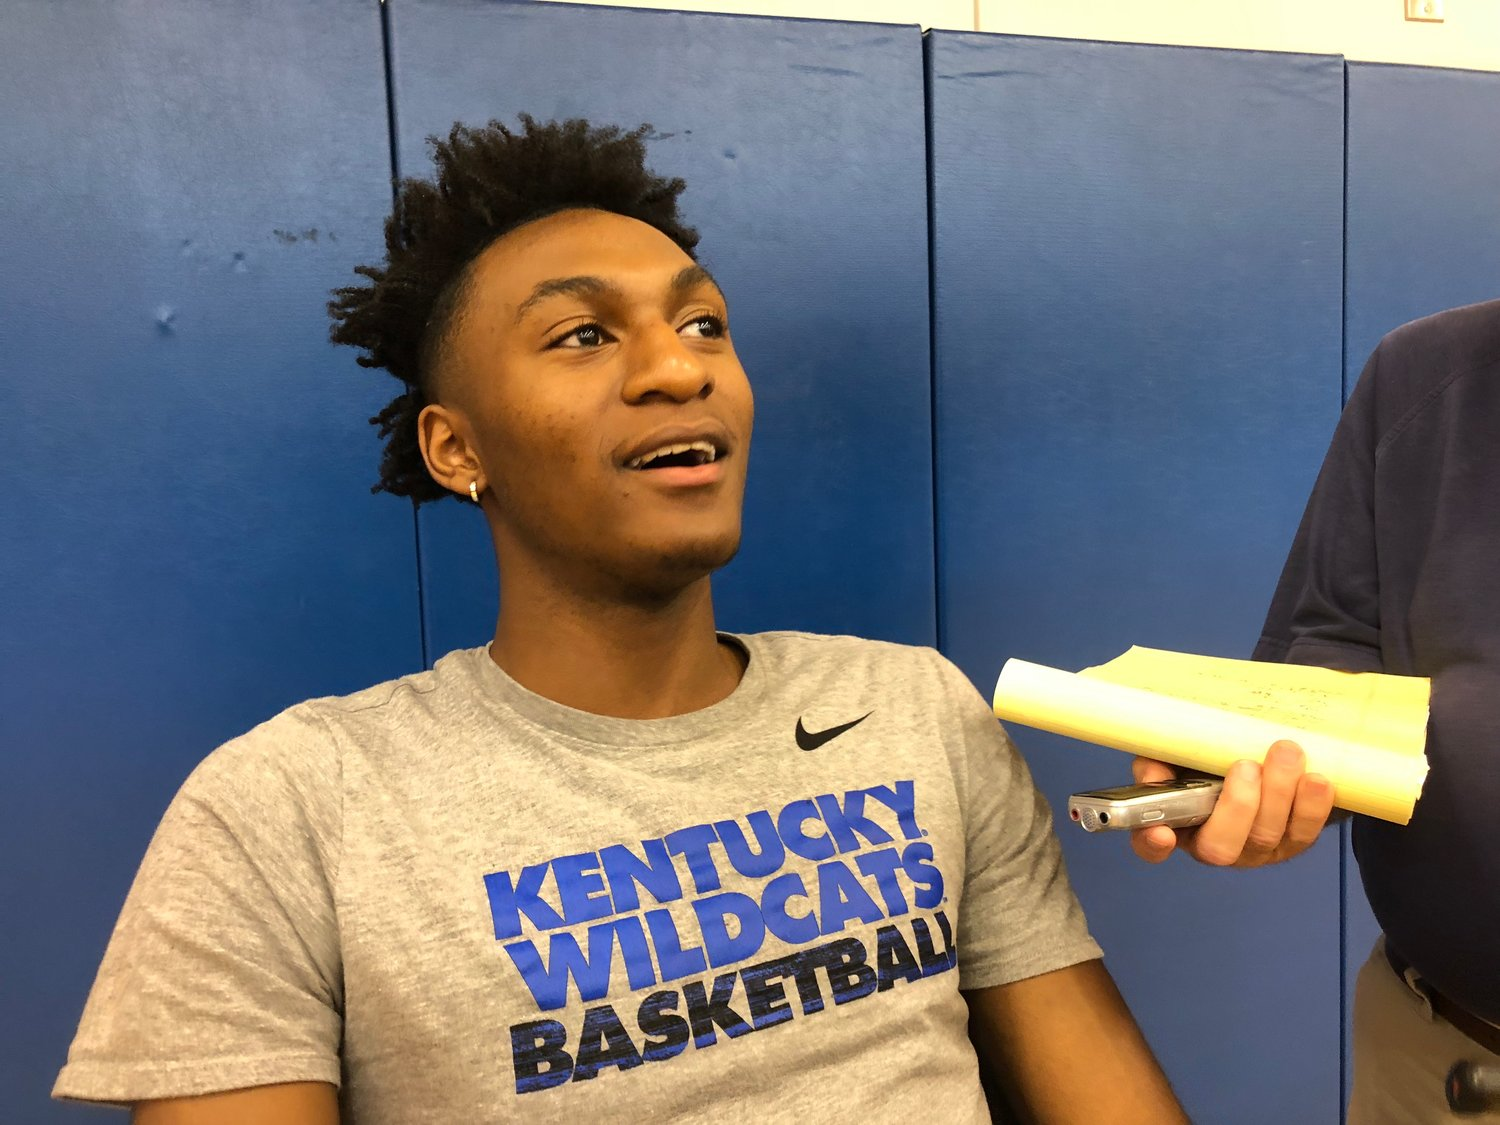 Immanuel Quickley is excited going into his second season with the Wildcats and joins classmate Ashton Hagans in the backcourt. (Kentucky Today/Keith Taylor)